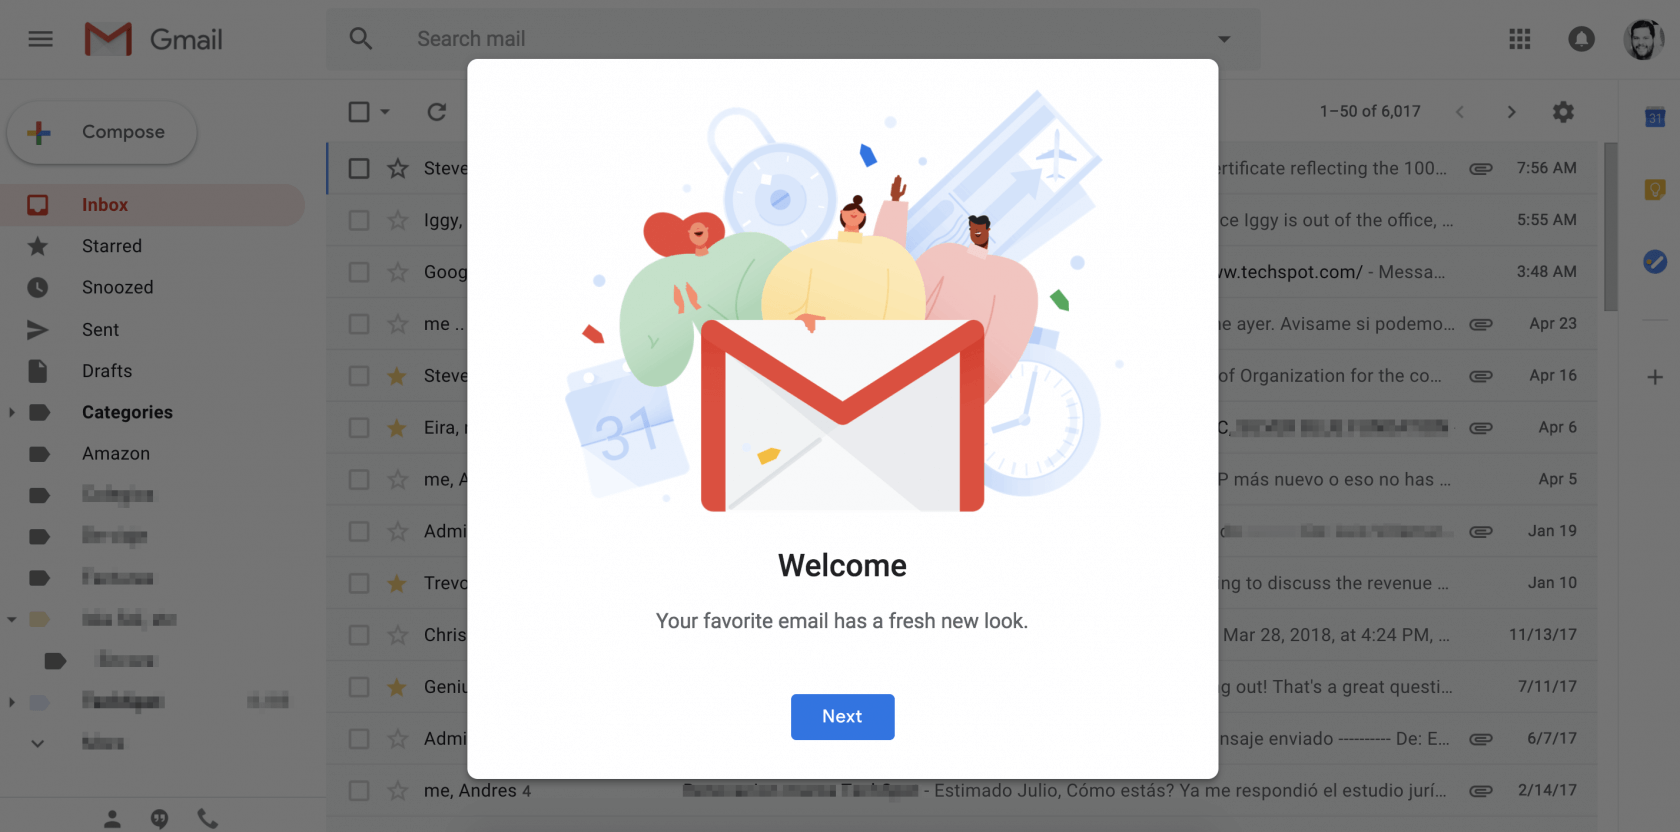 Meet Simplify, a Chrome extension that promises to clean up Gmail's cluttered interface